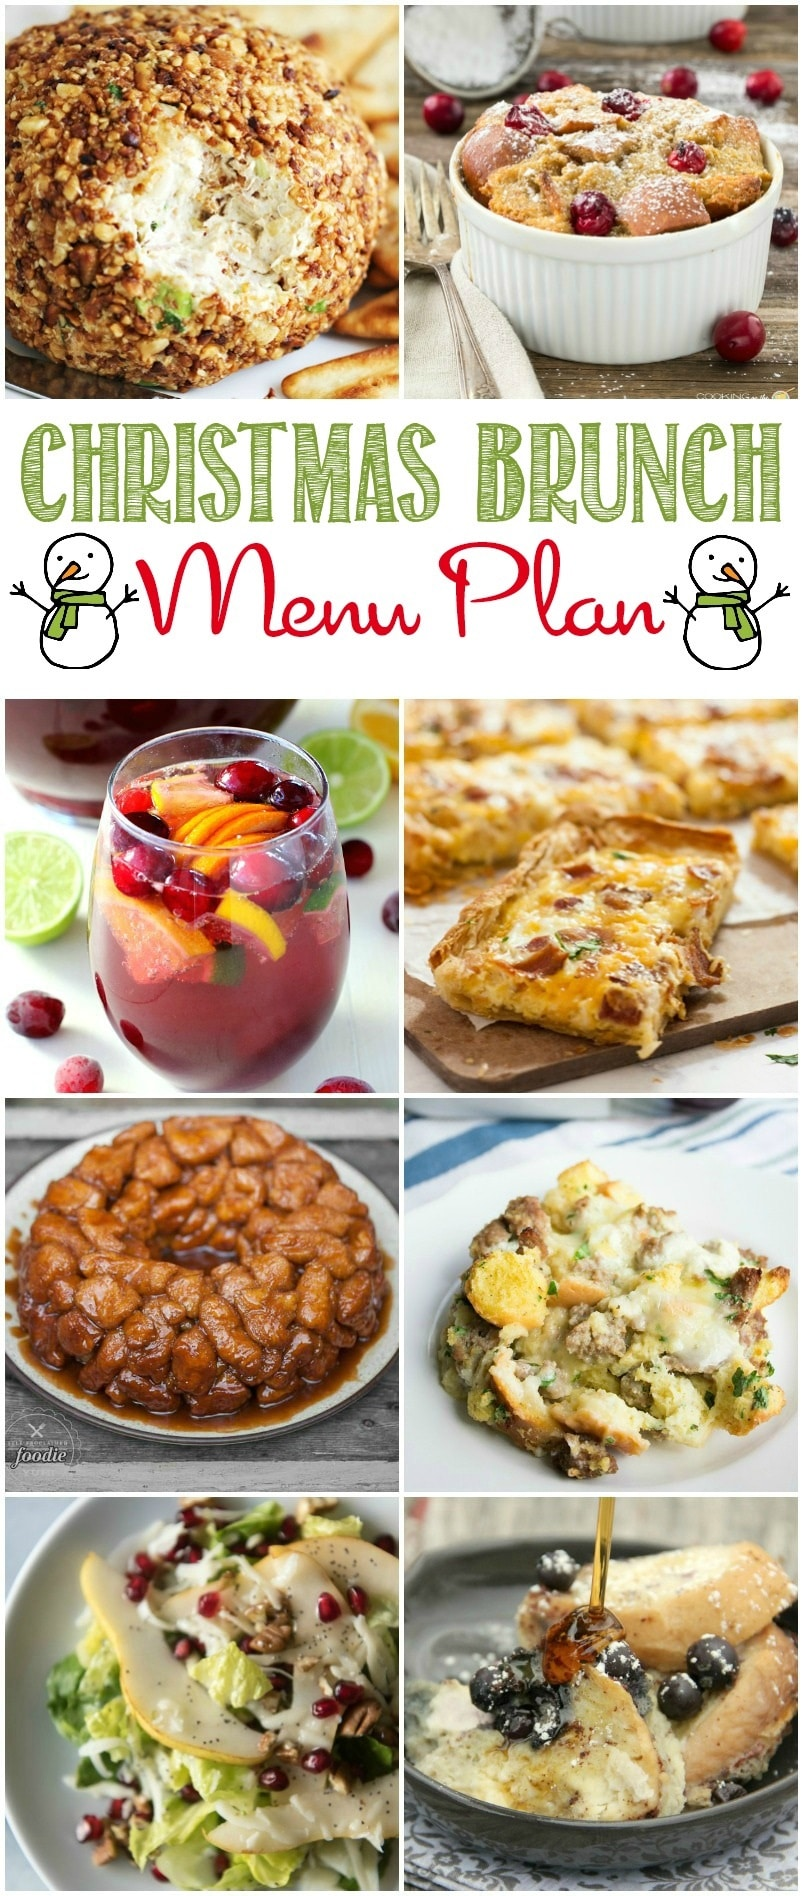 Every recipe you need for an amazing, delicious and perfectly Jolly Christmas Brunch! Your family and friends are sure to love these holiday recipes! This Menu Plan has all the recipes you need for a perfect pre-present opening meal.